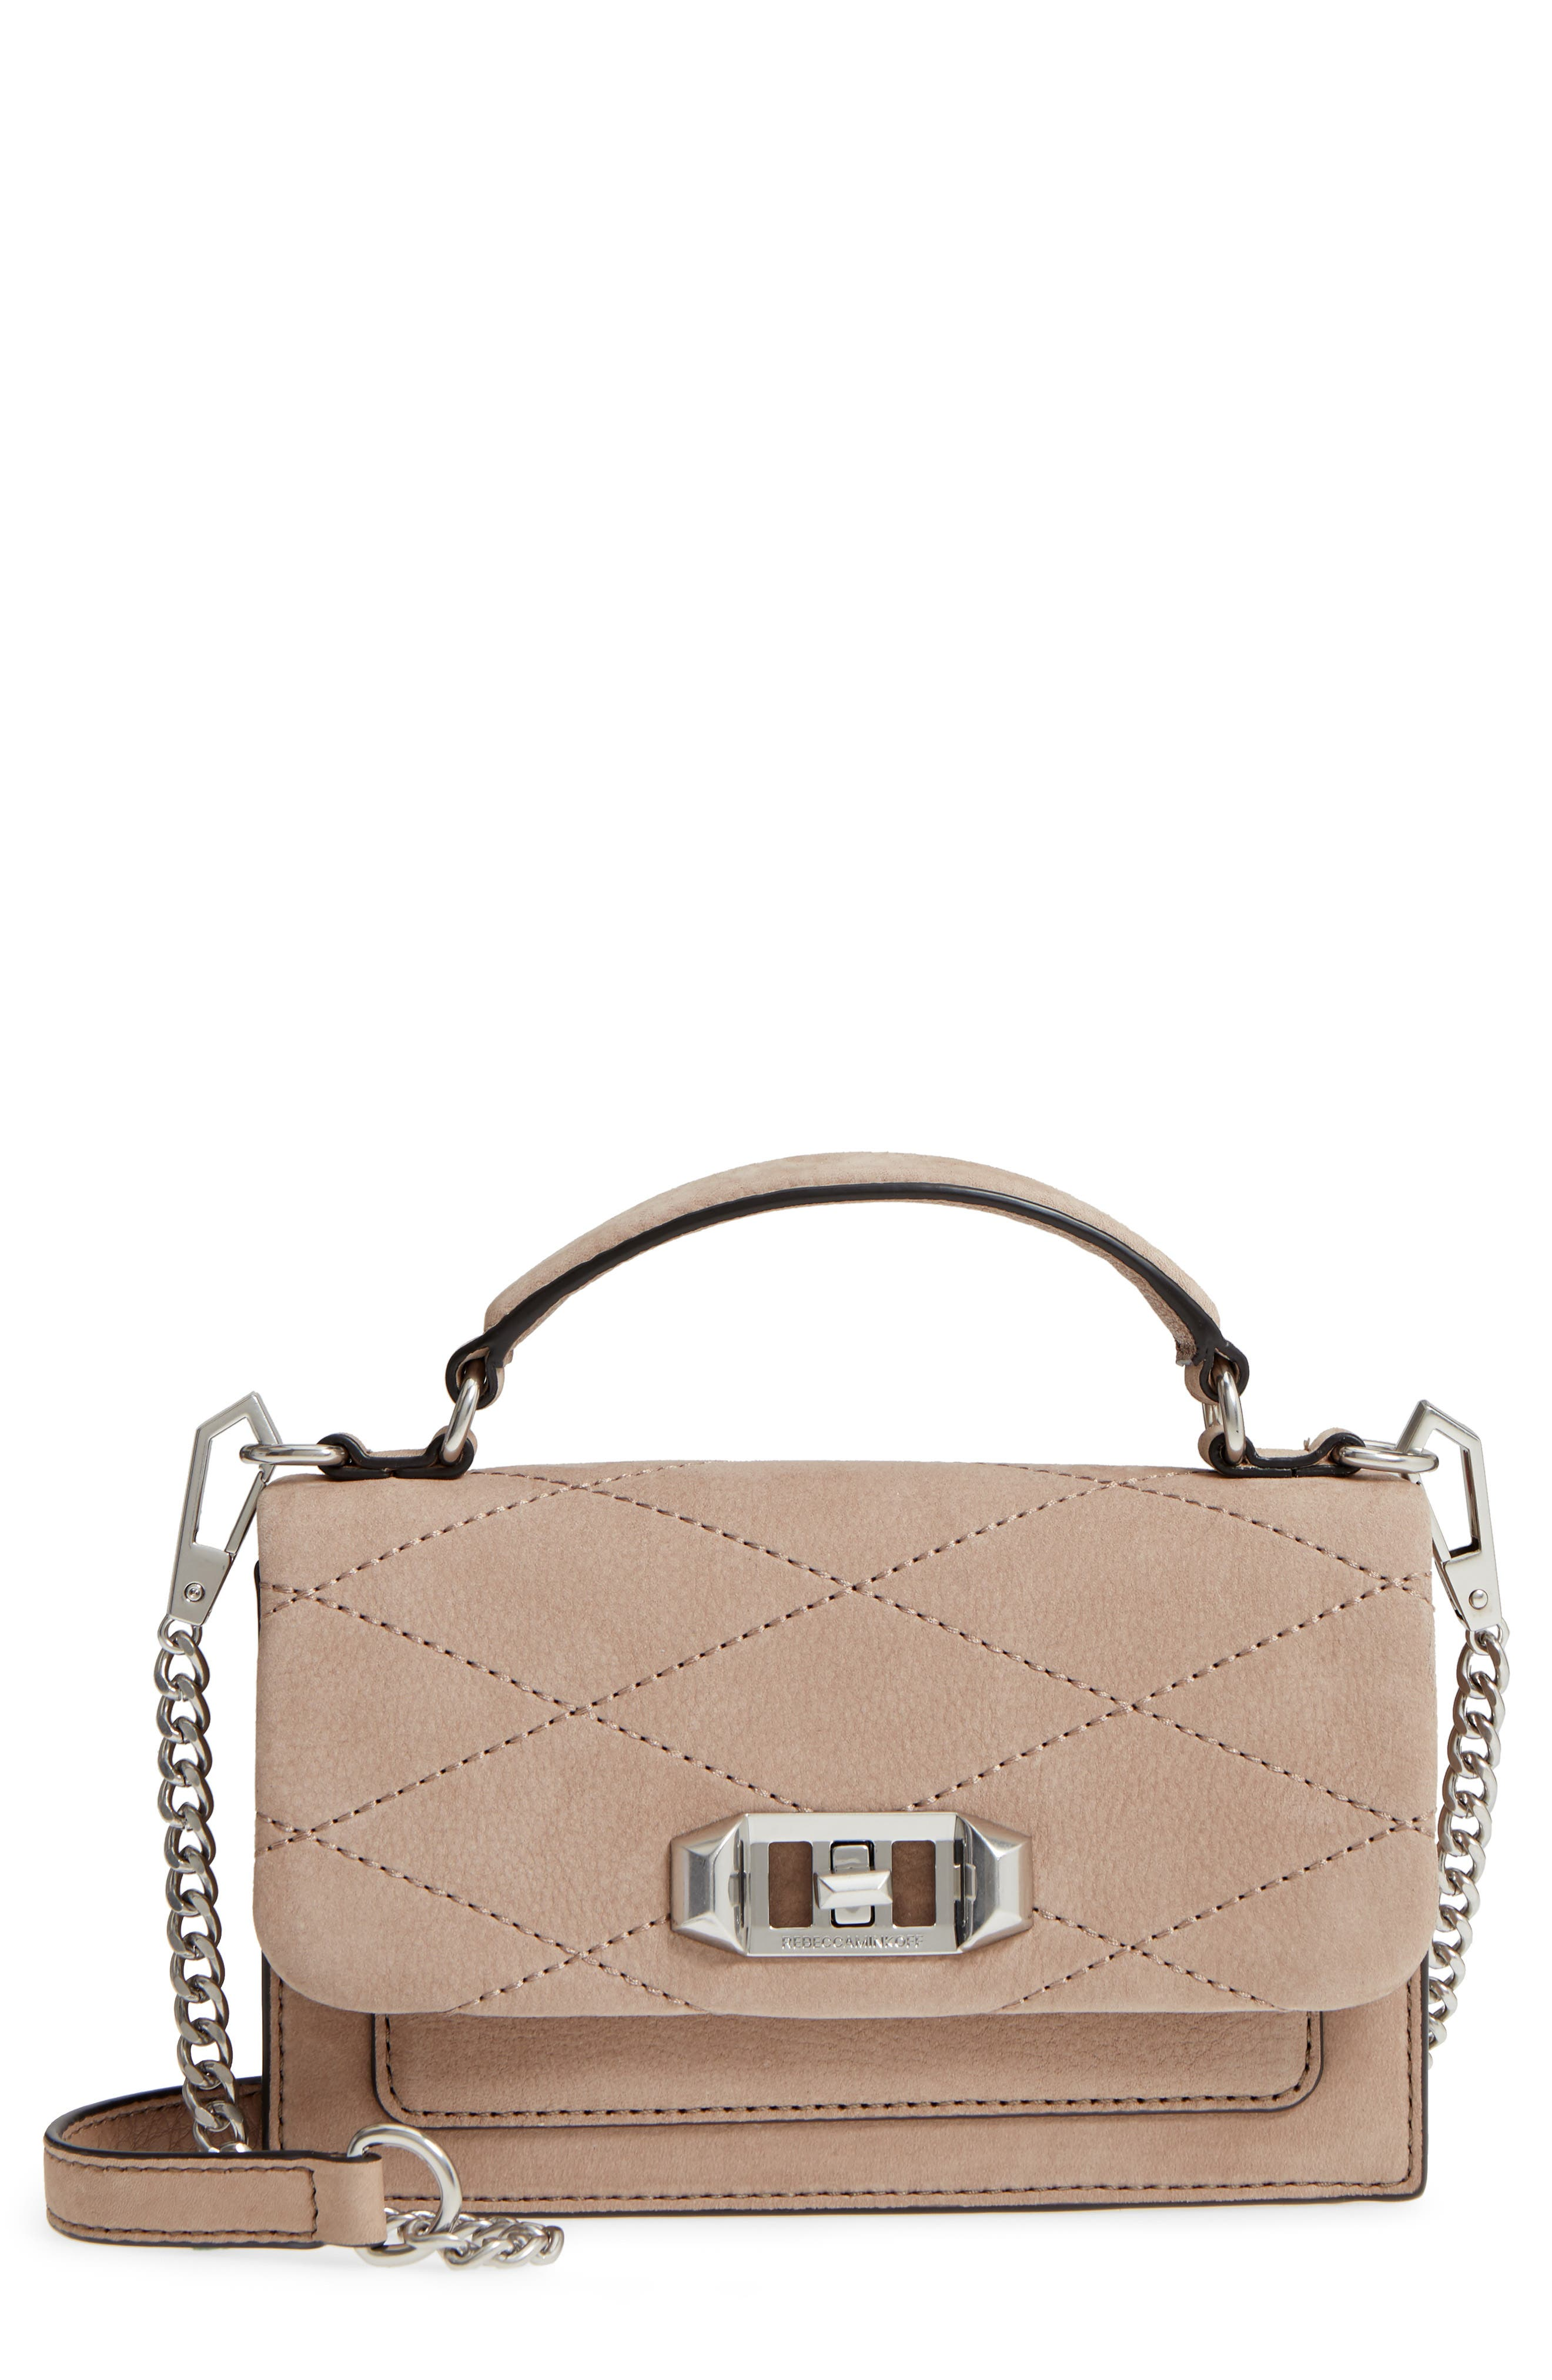 Image of Rebecca Minkoff Small Je T'aime Leather Crossbody Bag